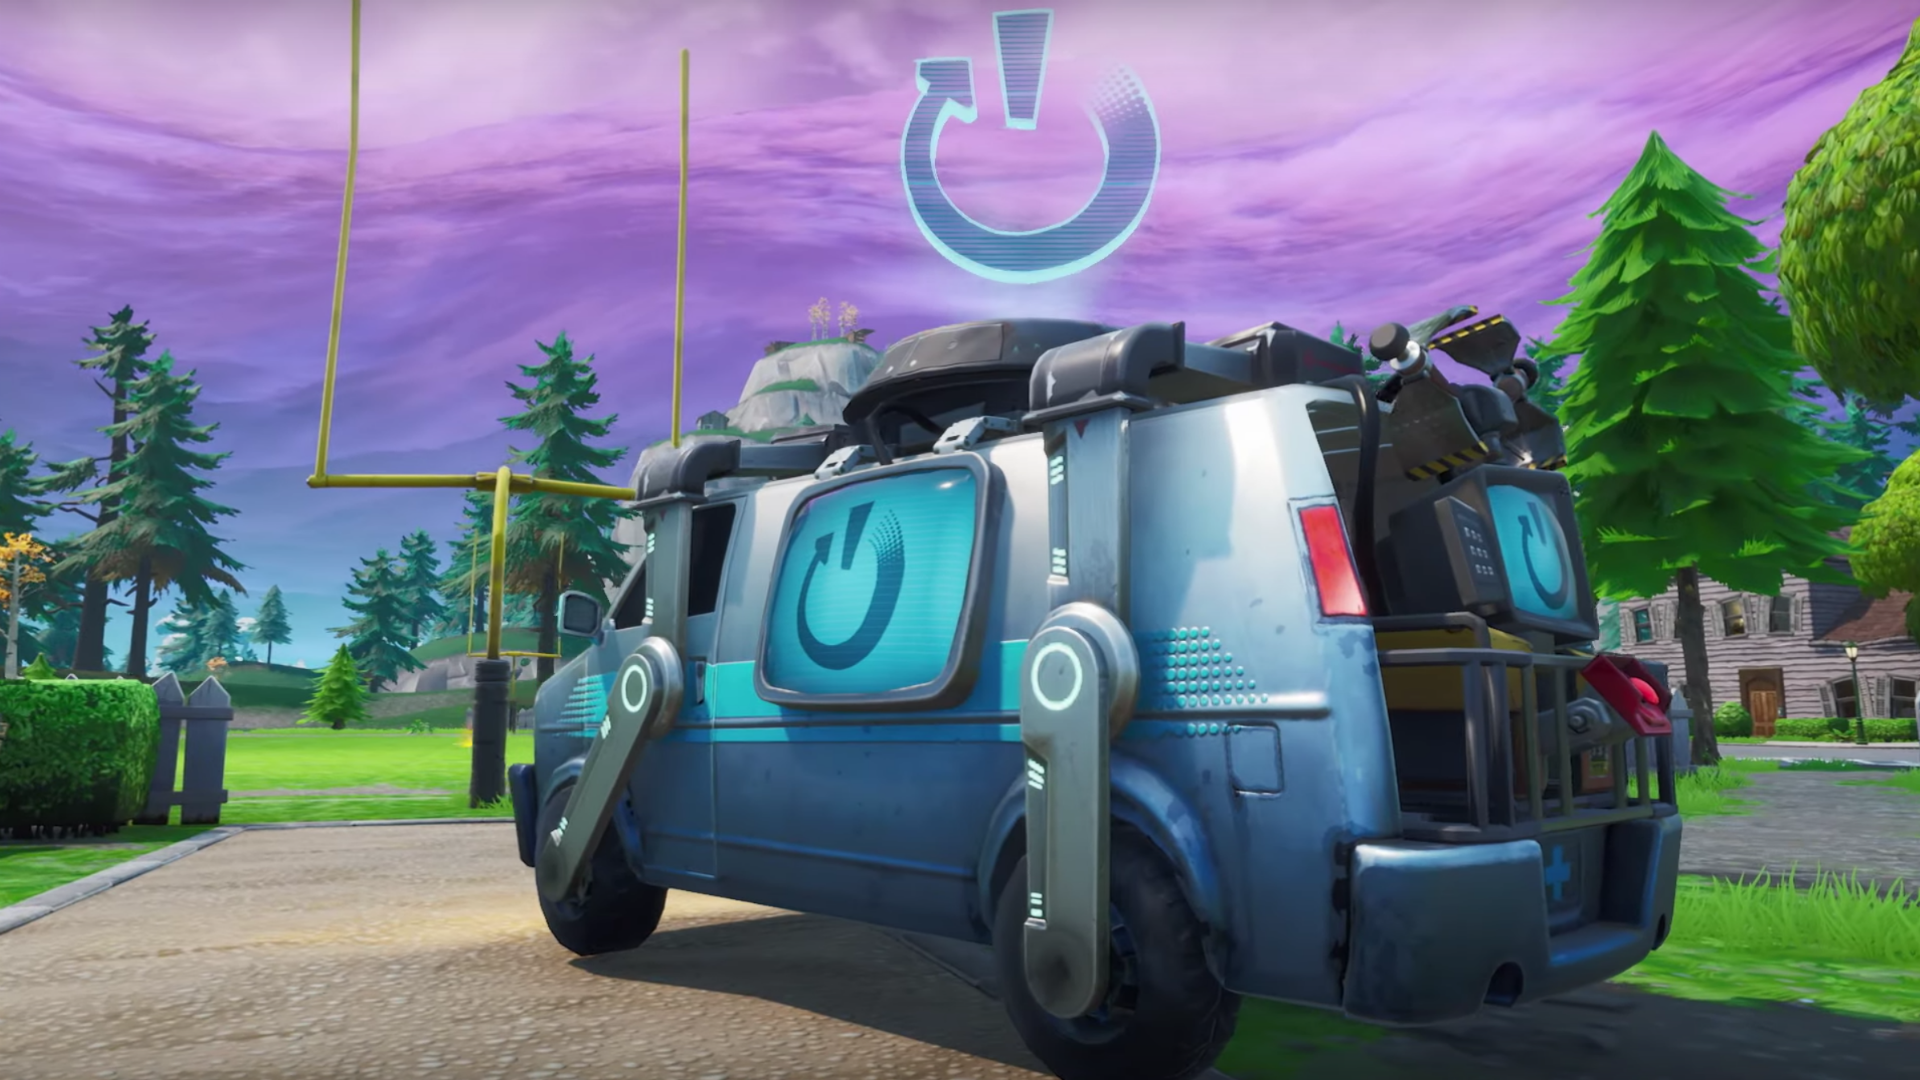 Fortnite Reboot Van Coming to Live Servers Next Week